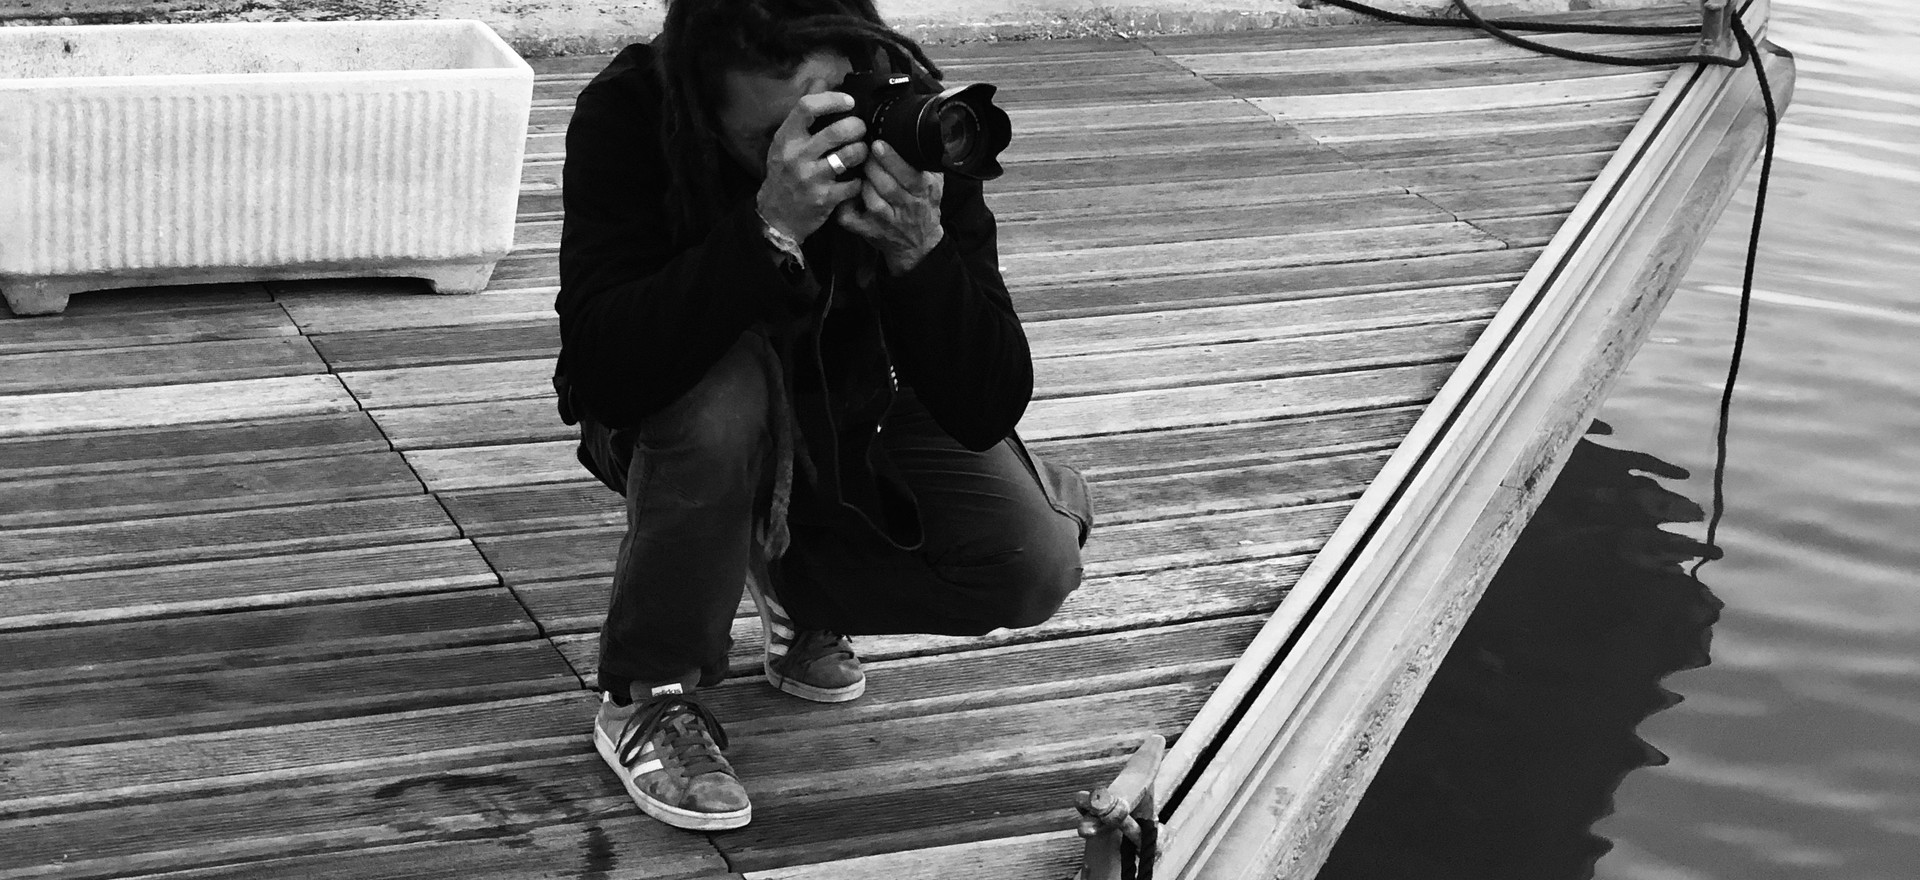 Yannick taking pictures